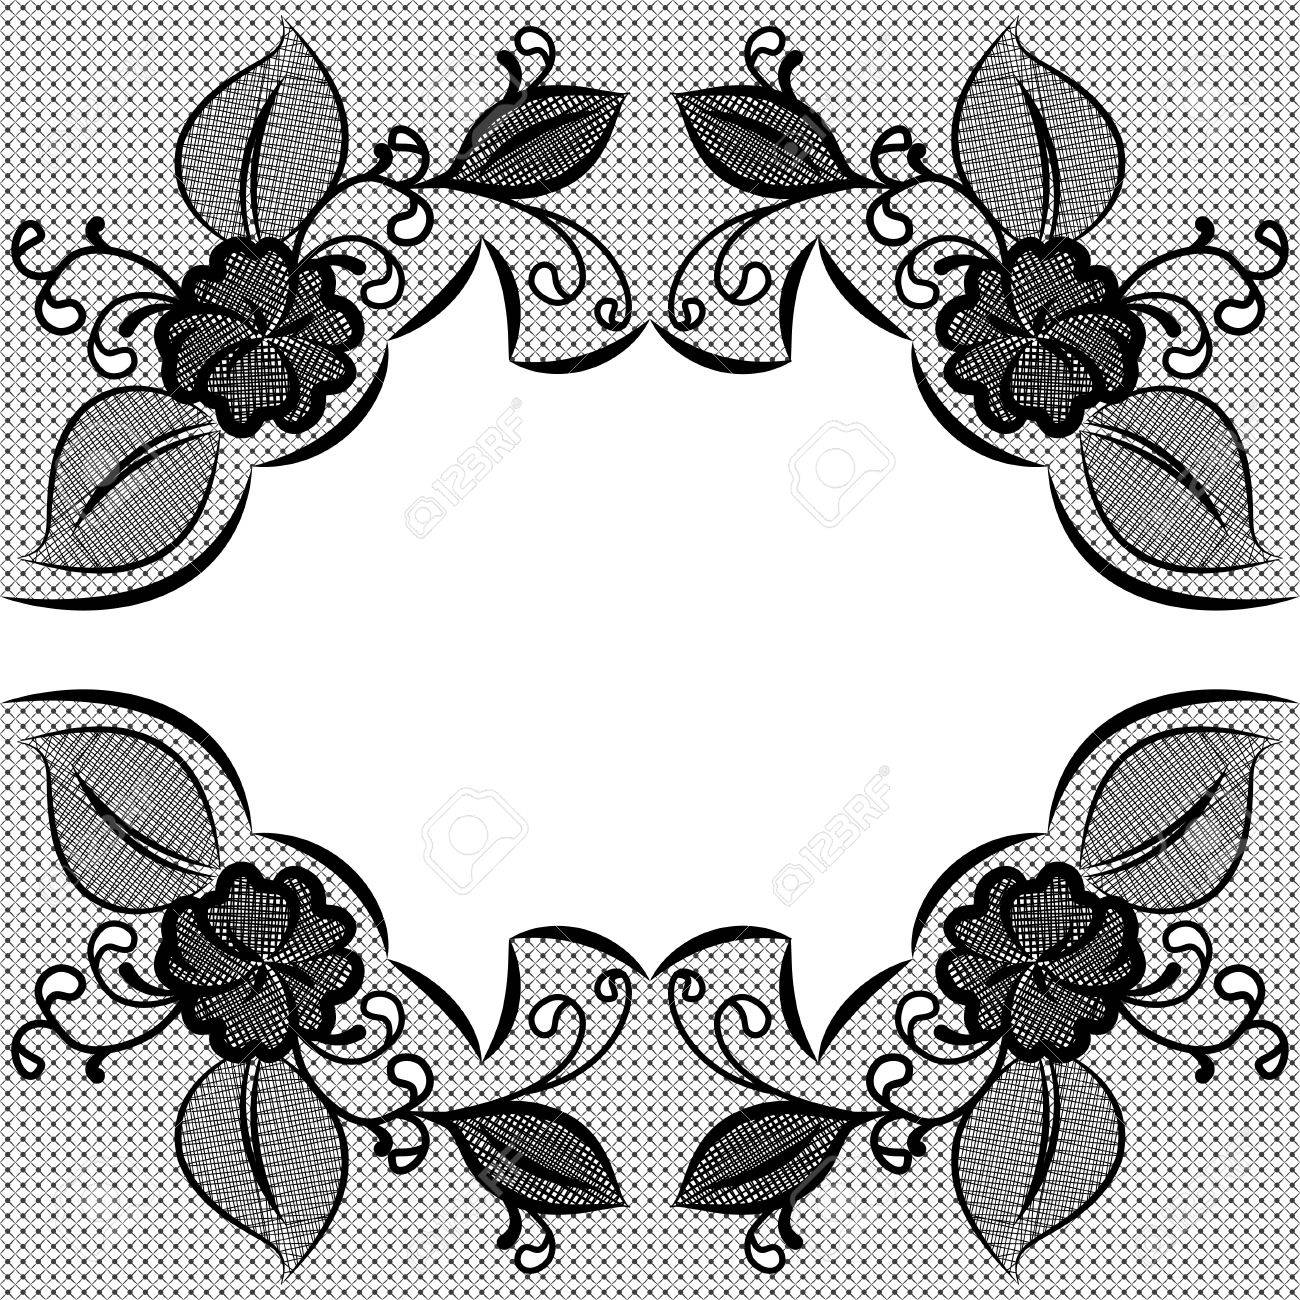 lace black and white background with space for text can be used rh 123rf com vector lace pattern free cute lace pattern vector free